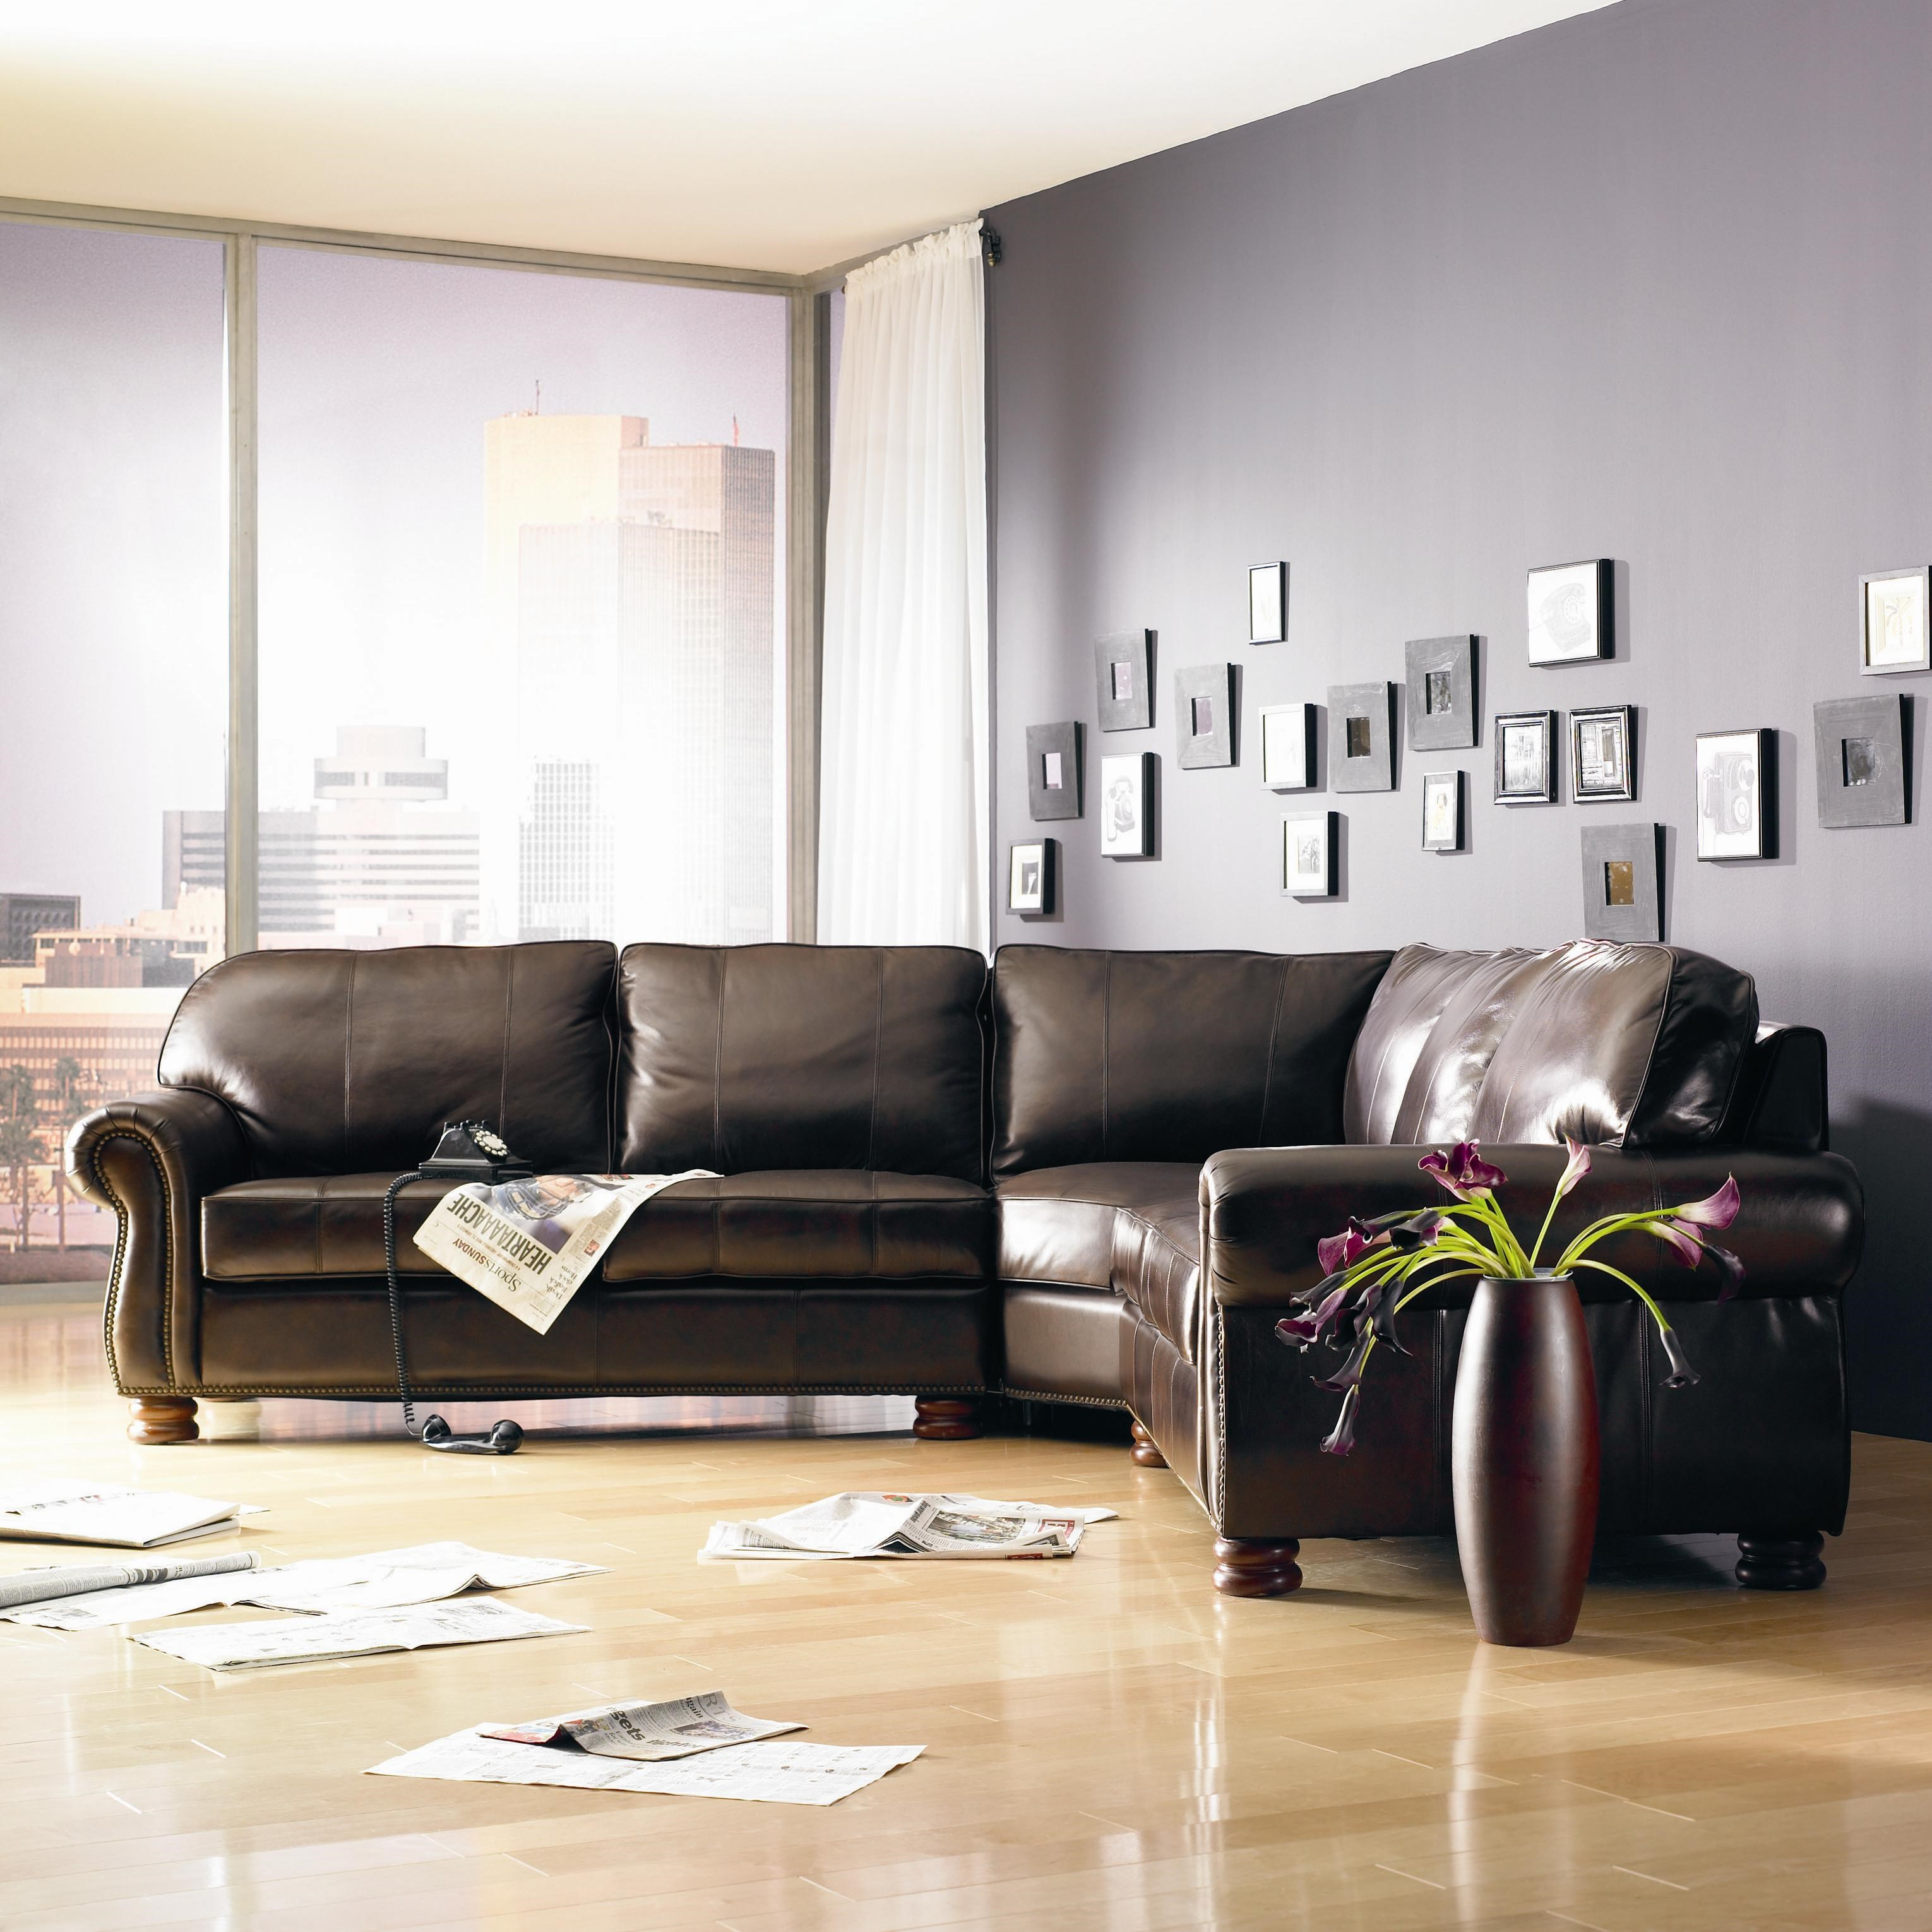 Quality Leather Furnishings At Affordable Pricing ...